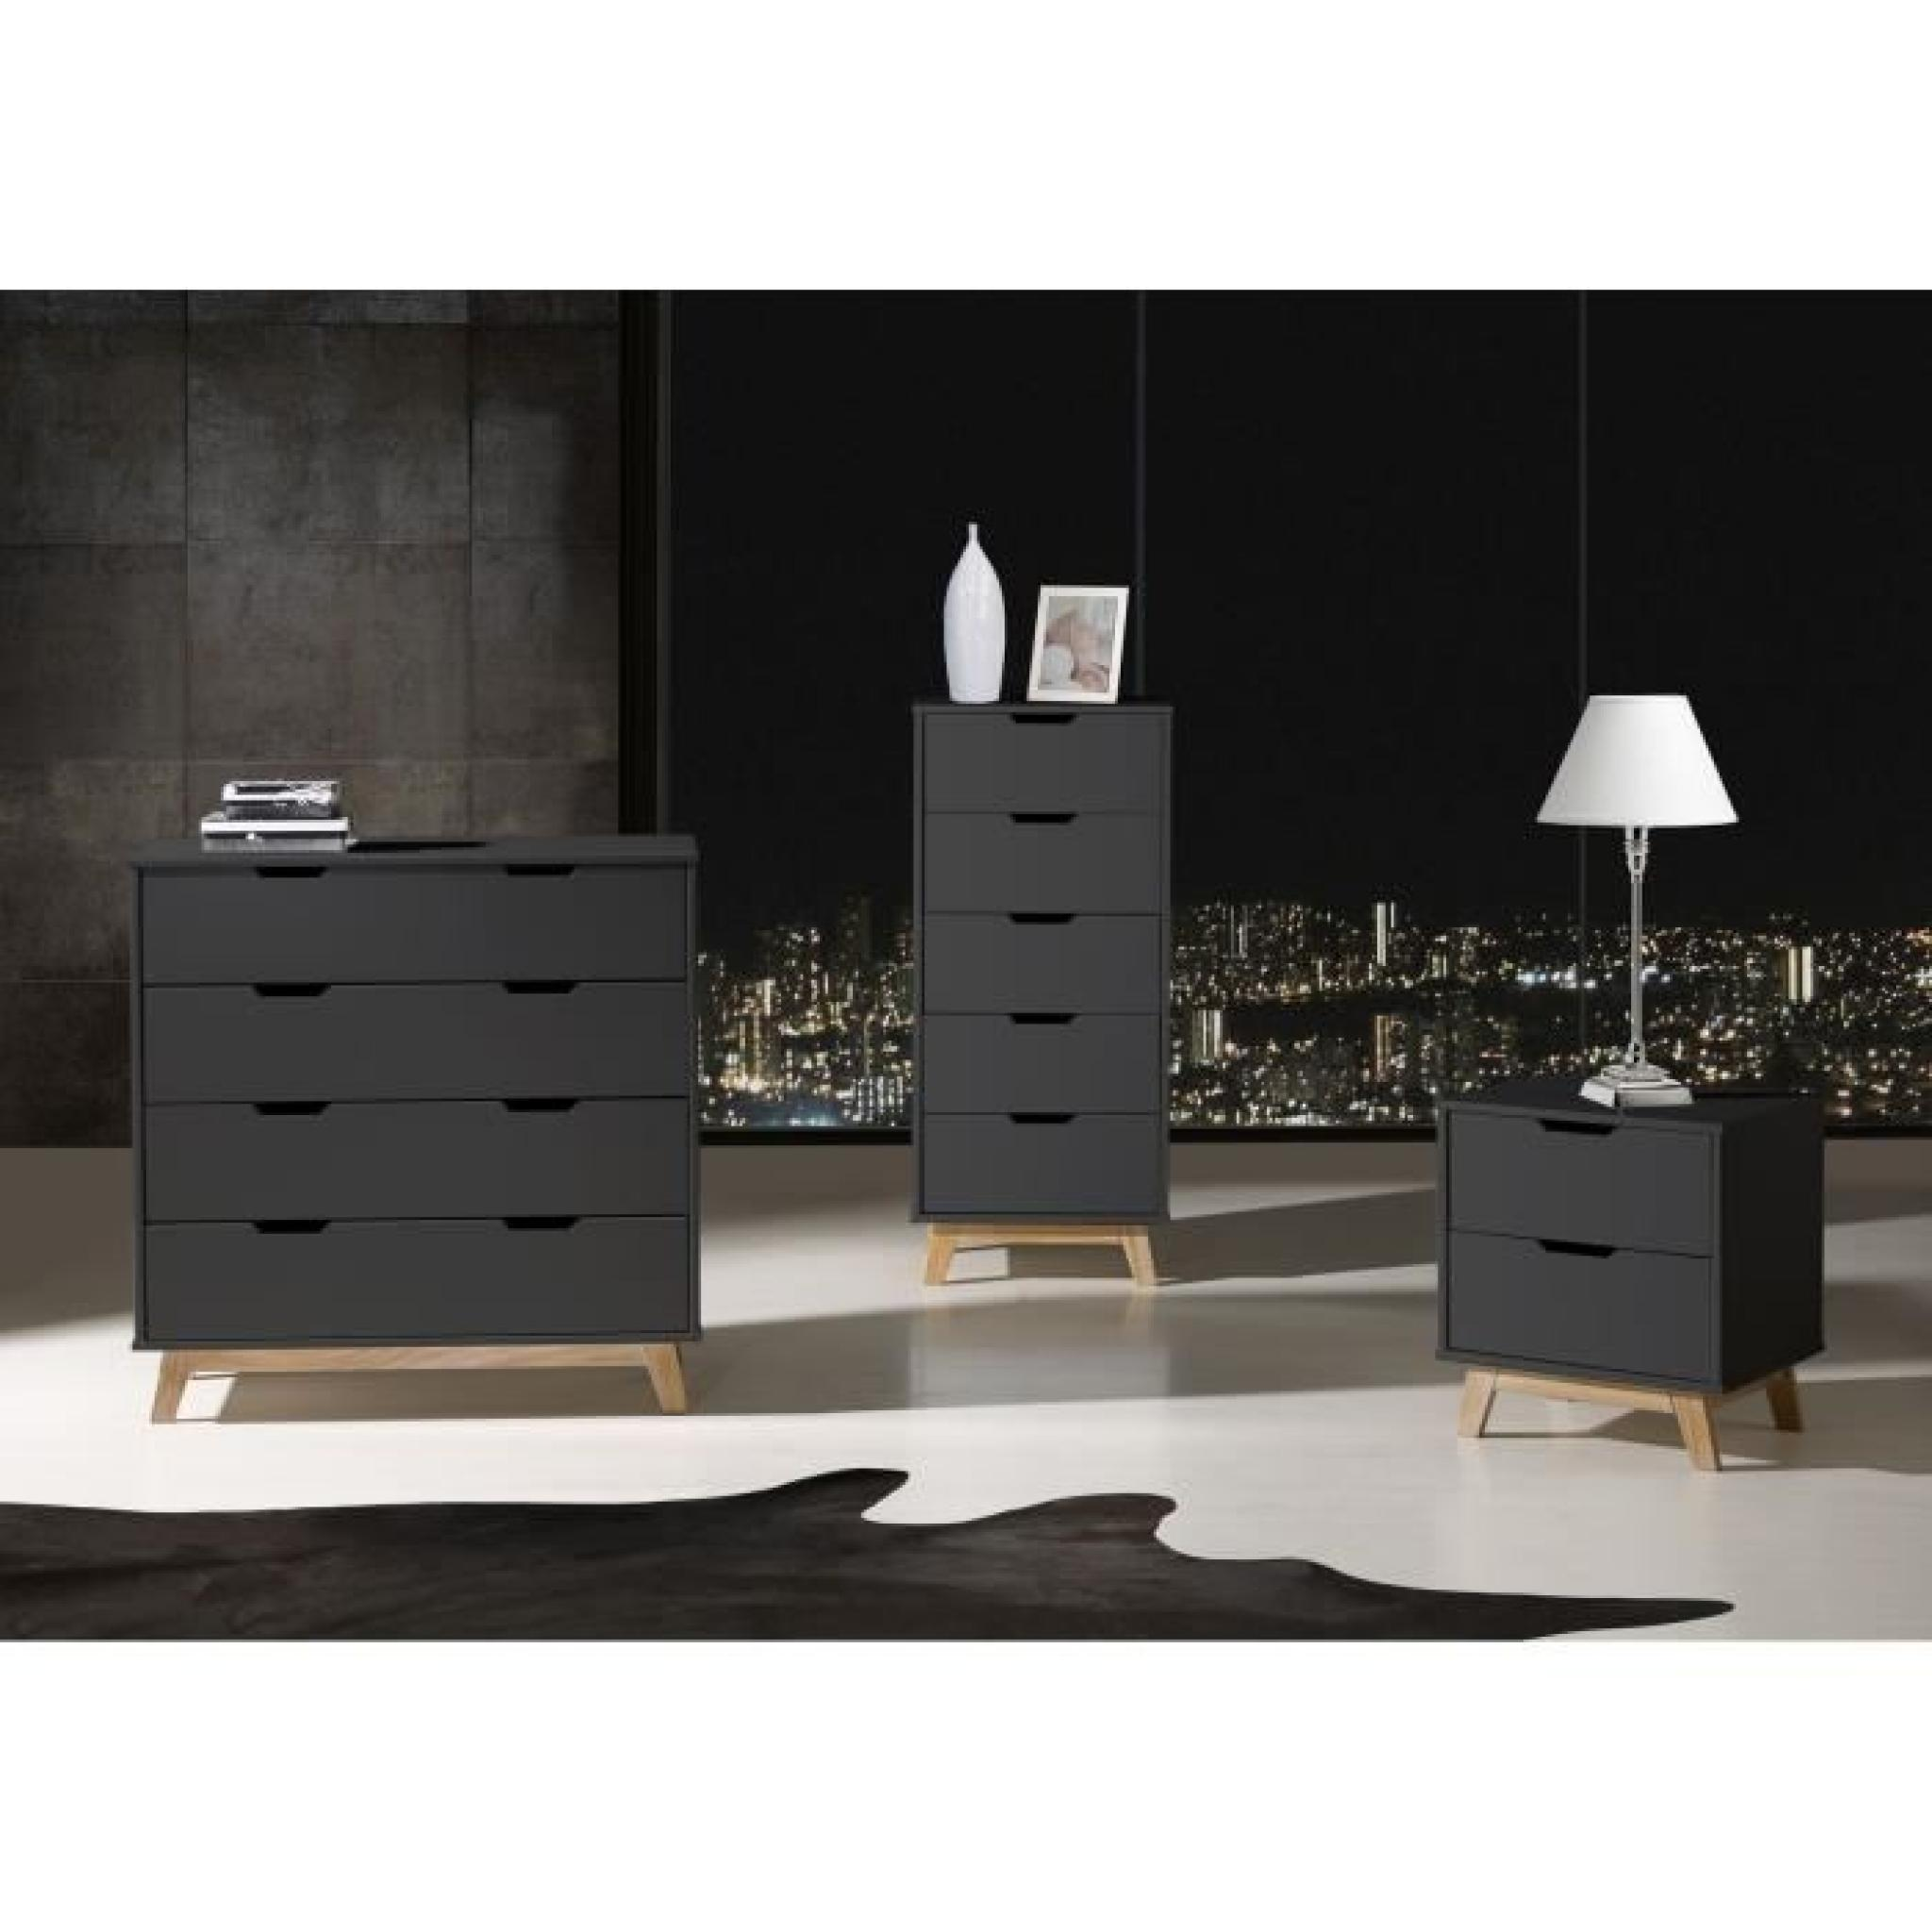 alina commode 4 tiroirs gris anthracite ch ne achat vente commode pas cher couleur et. Black Bedroom Furniture Sets. Home Design Ideas